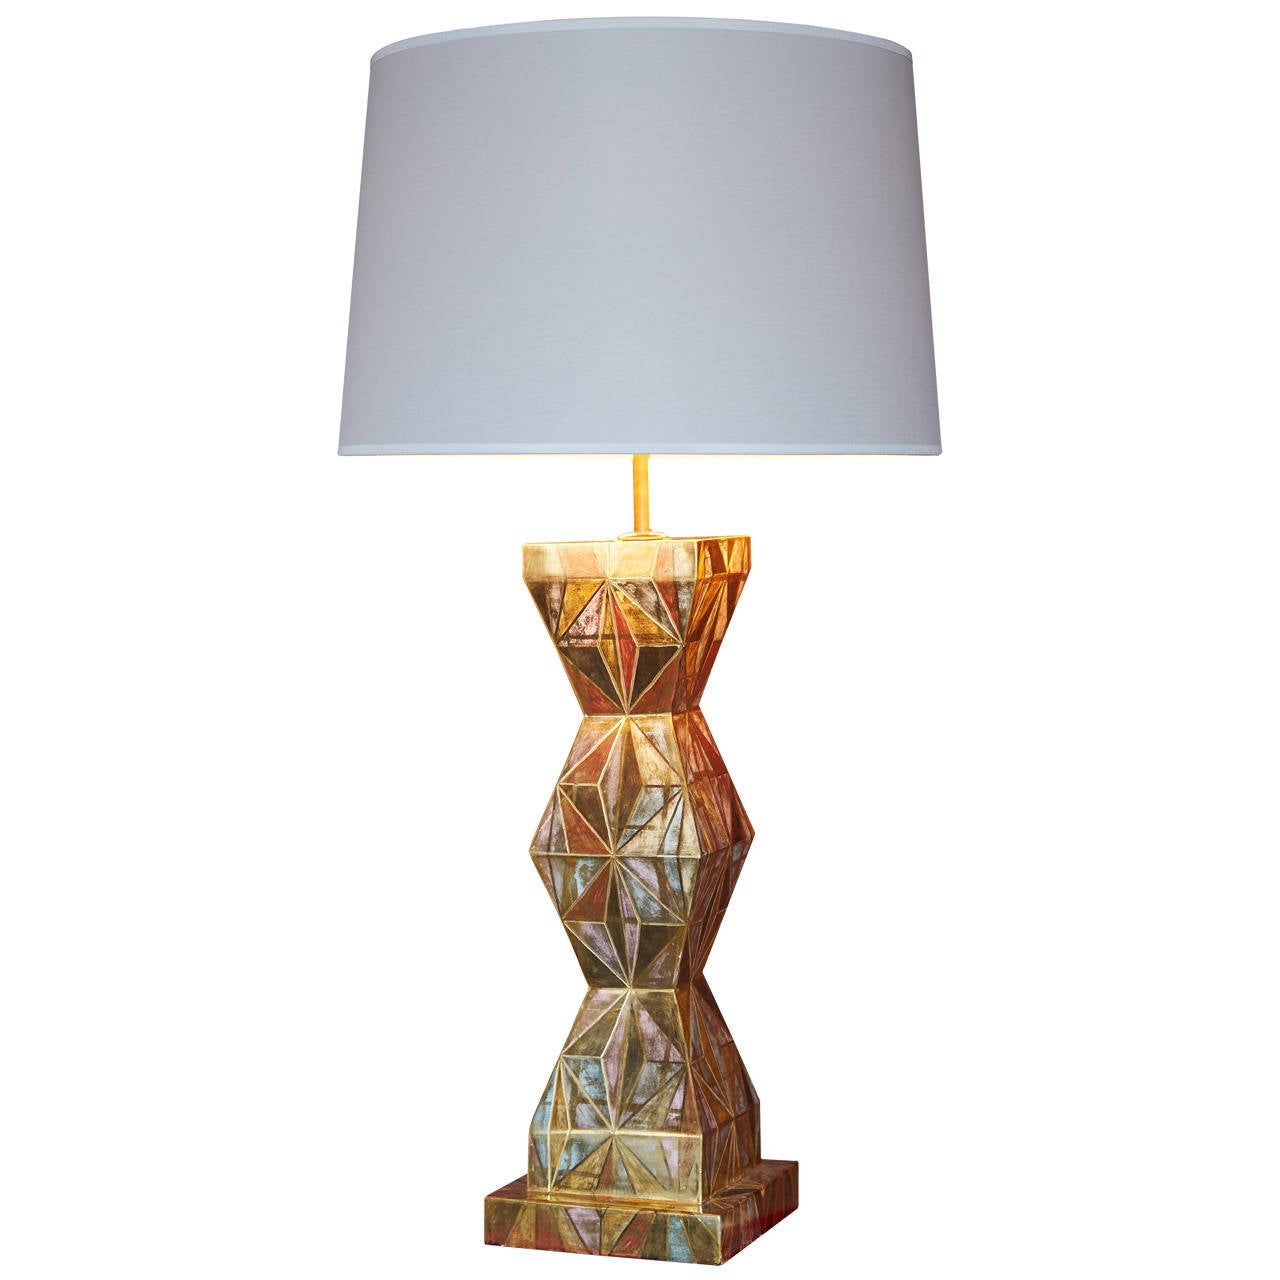 Pottery barn clift glass lamp ebay -  Pottery Barn Floor Lamps Ebay By Clift Glass Cylinder Table Lamp Base Espresso Best Inspiration